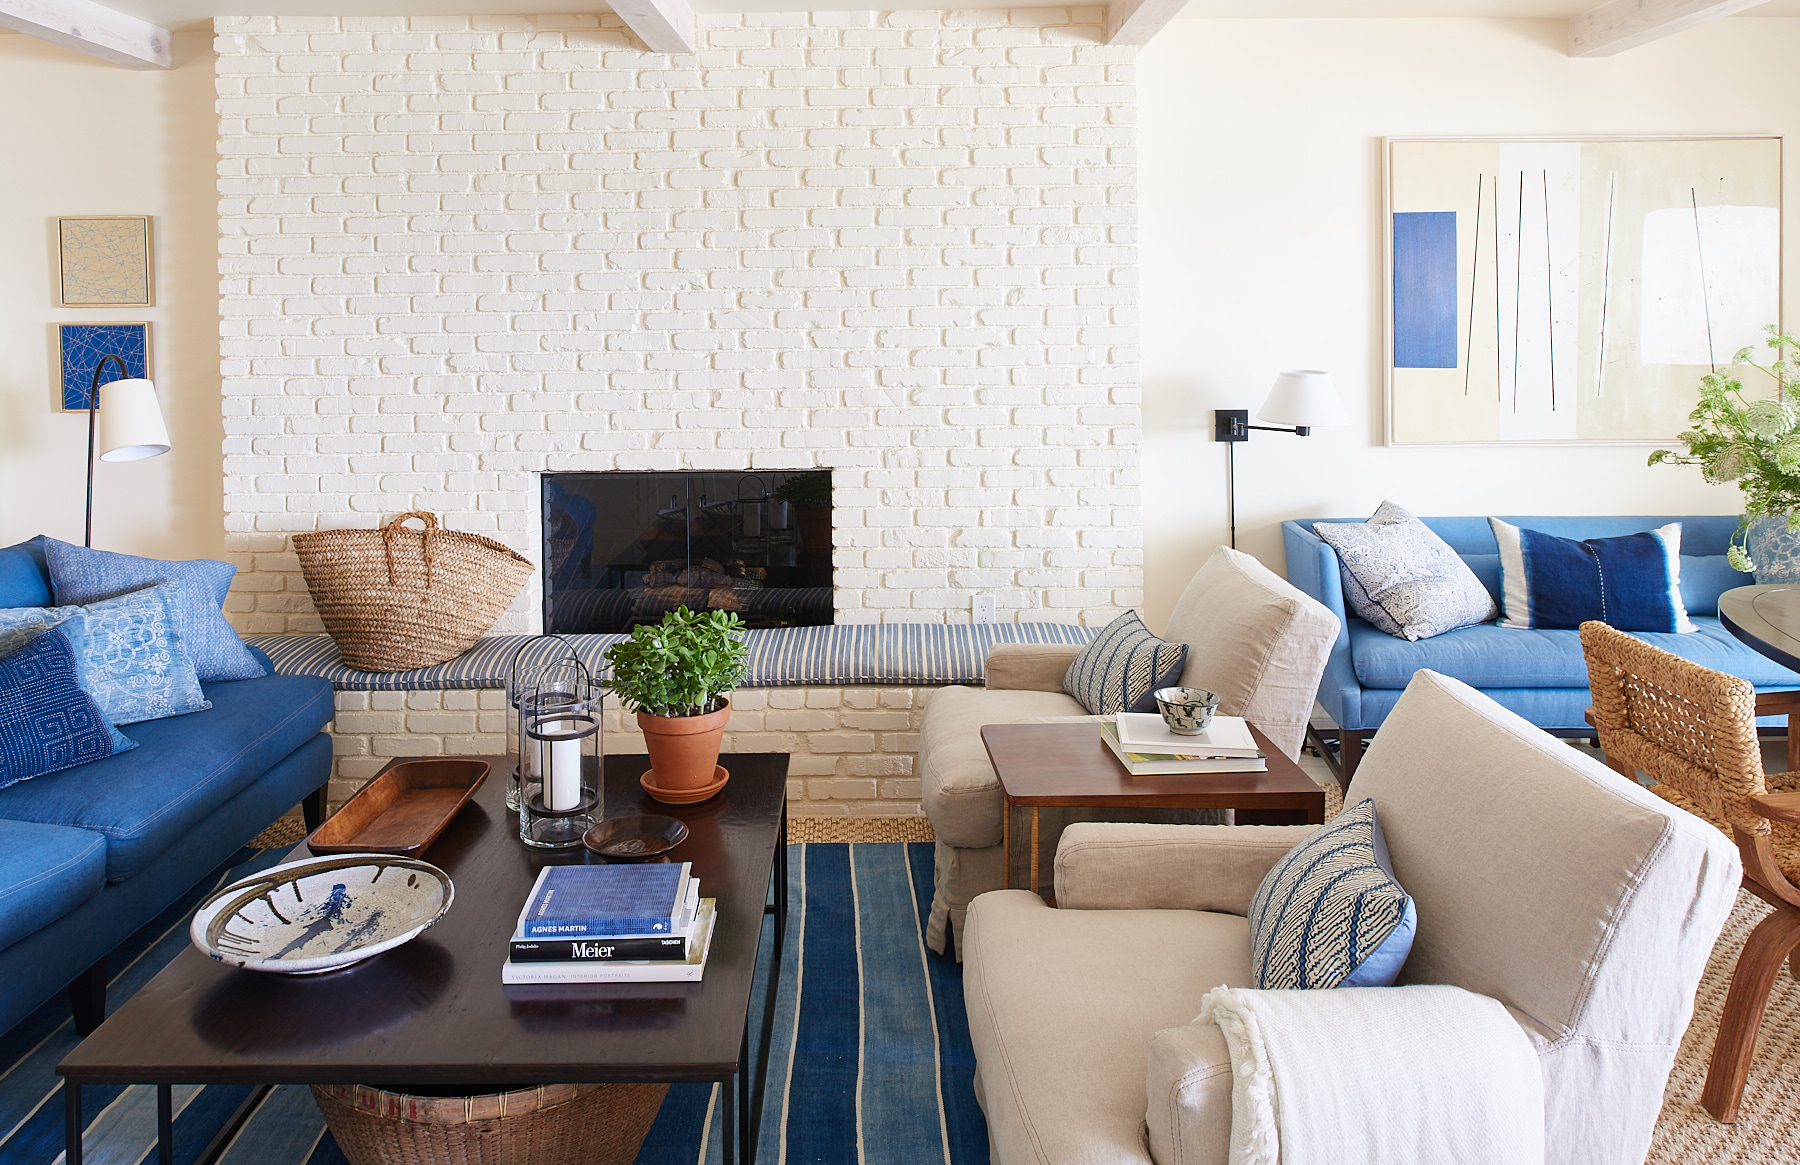 Beige linen club chairs, denim-style sofa, and horizontal-tufted settee.